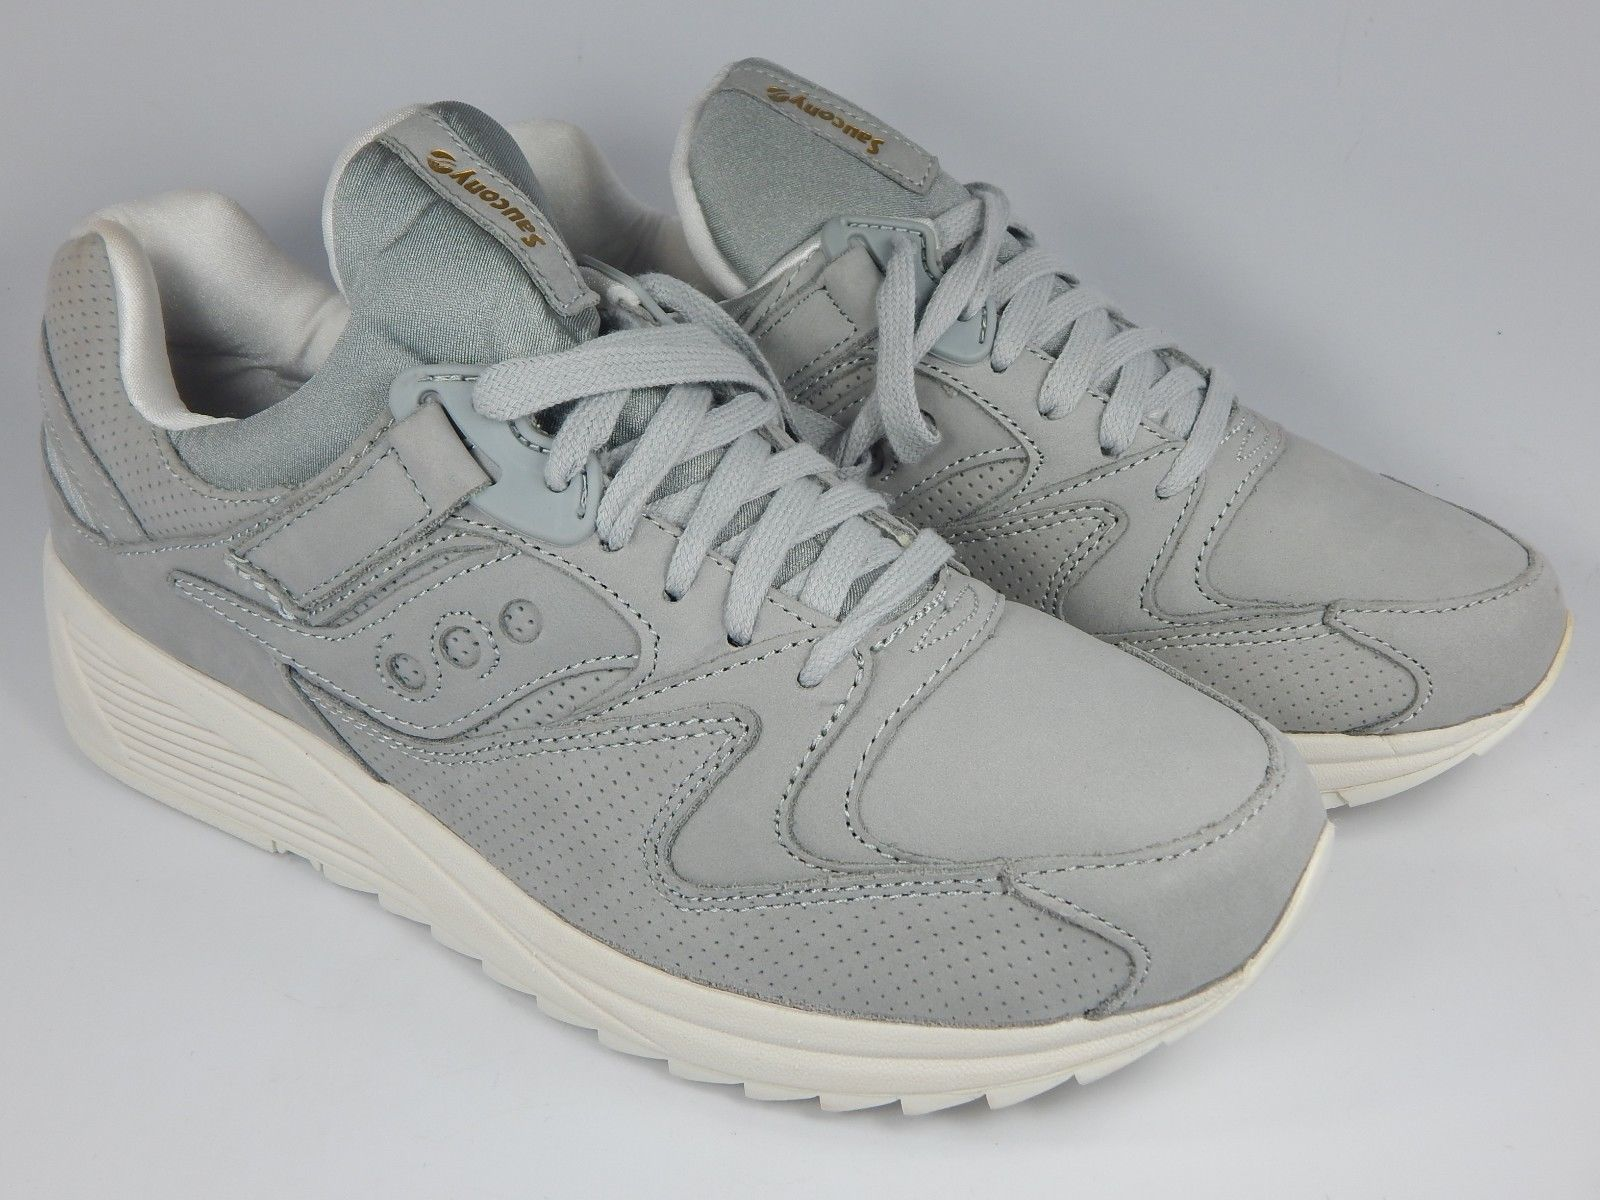 Saucony Grid 8500 HT Original Running Shoes Men's Sz 9 M EU 42.5 Gray S70390-3